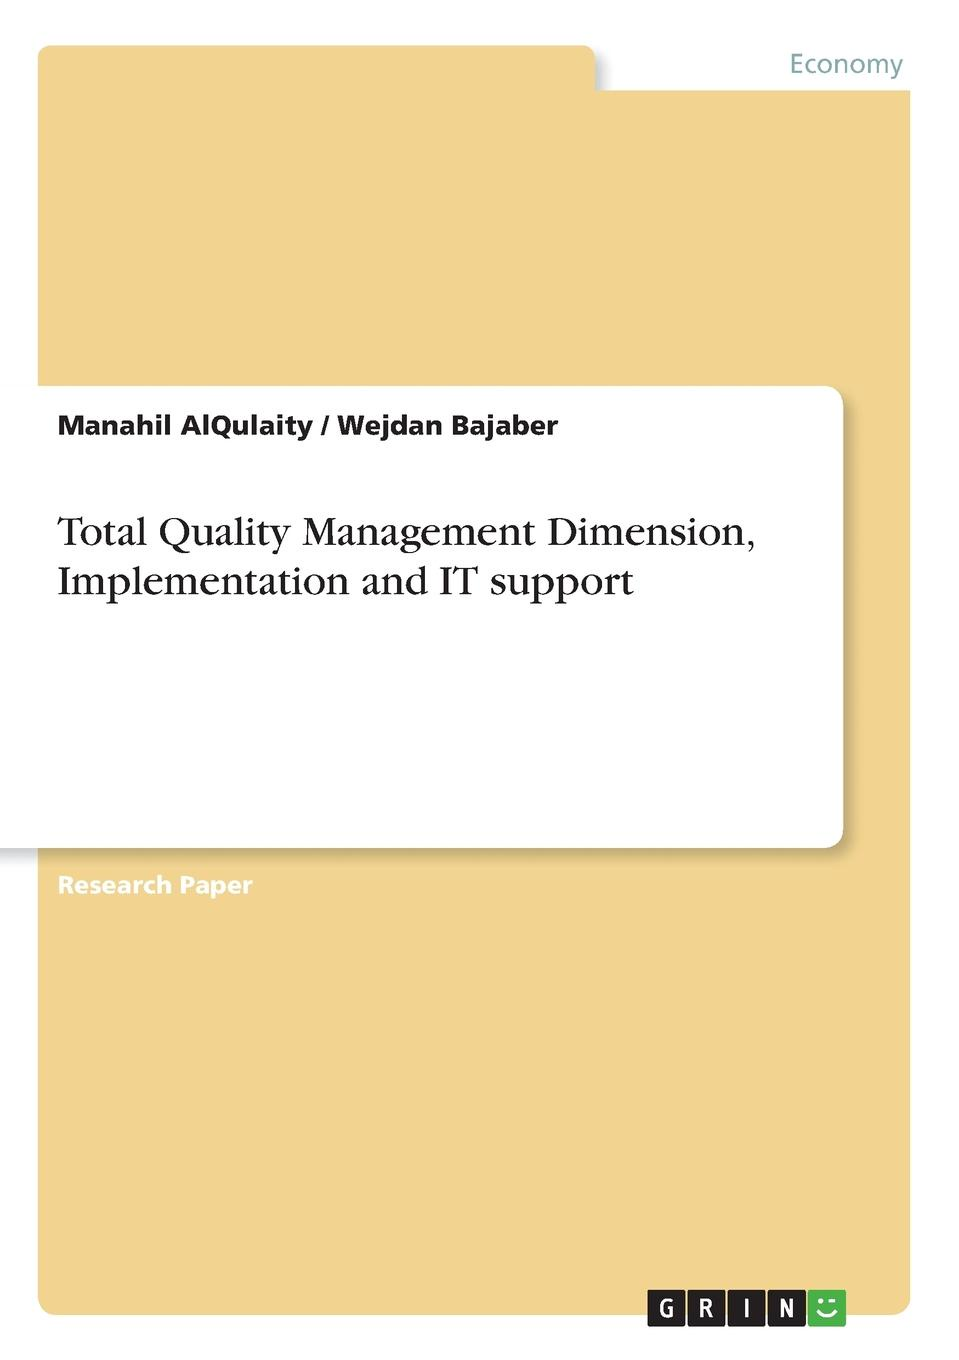 Manahil AlQulaity, Wejdan Bajaber Total Quality Management Dimension, Implementation and IT support abadal salam t hussain measurement techniques of total quality management tqm